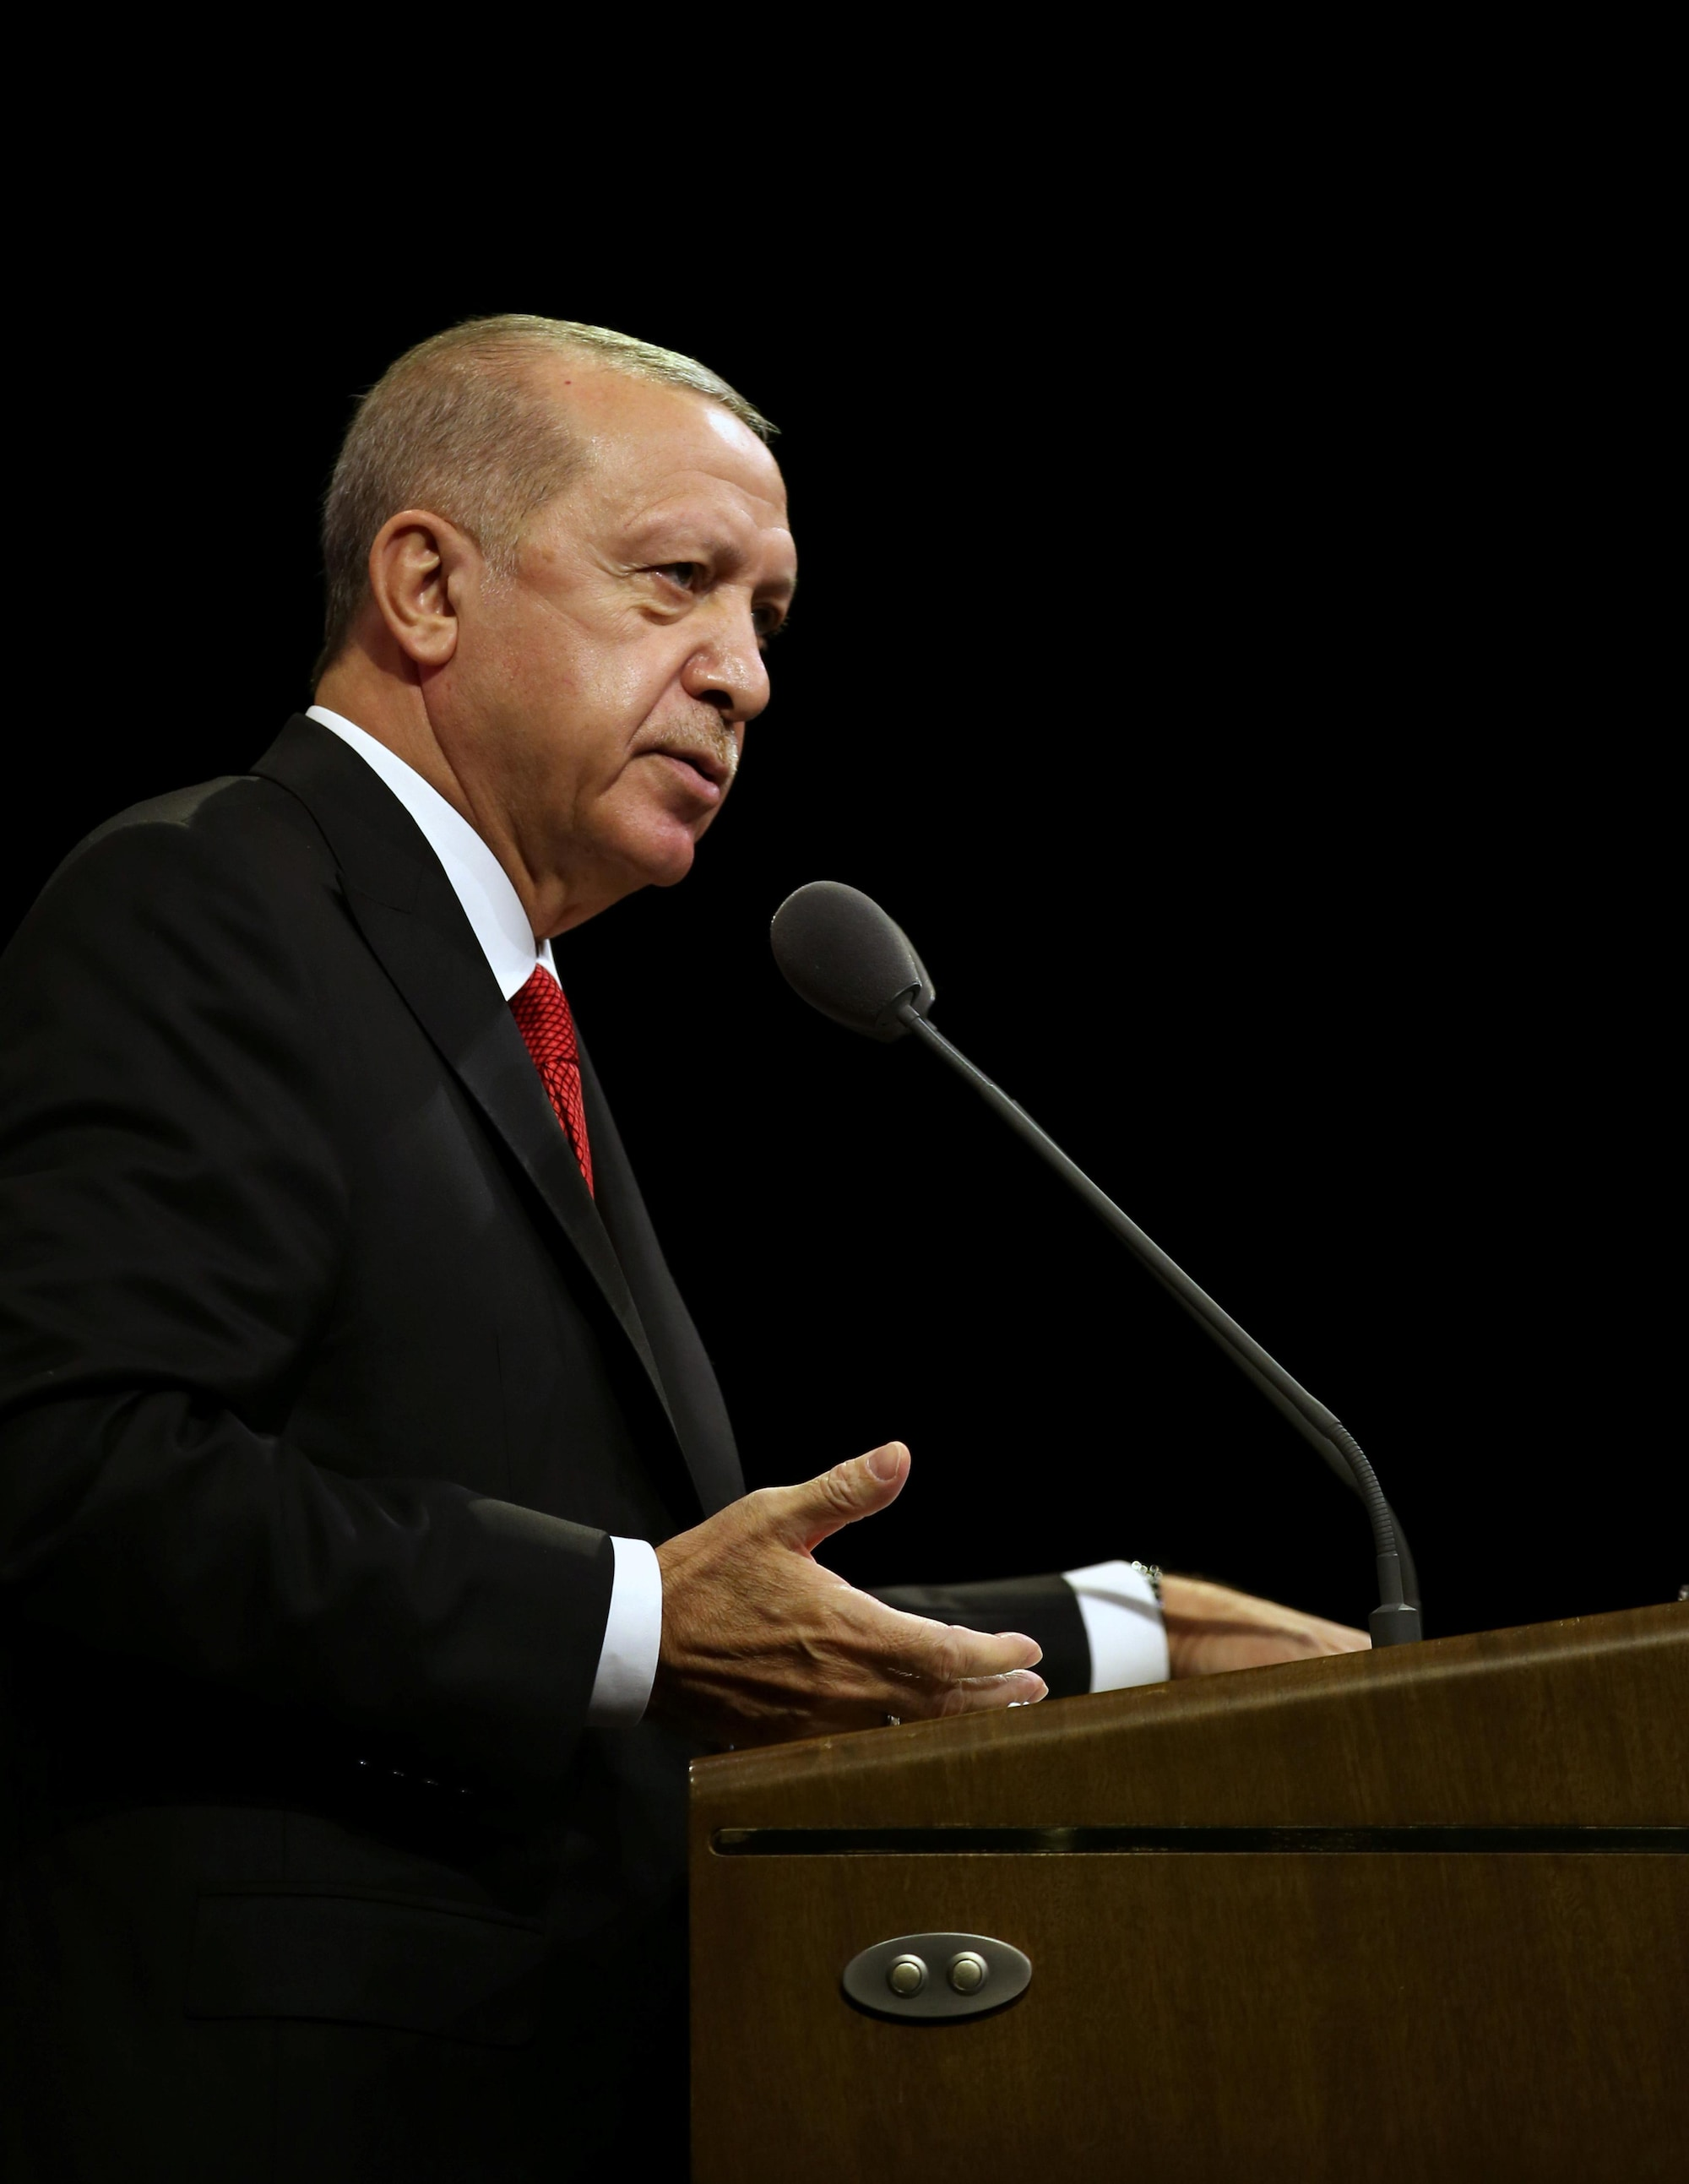 Erdogan urges Turks to boycott French goods